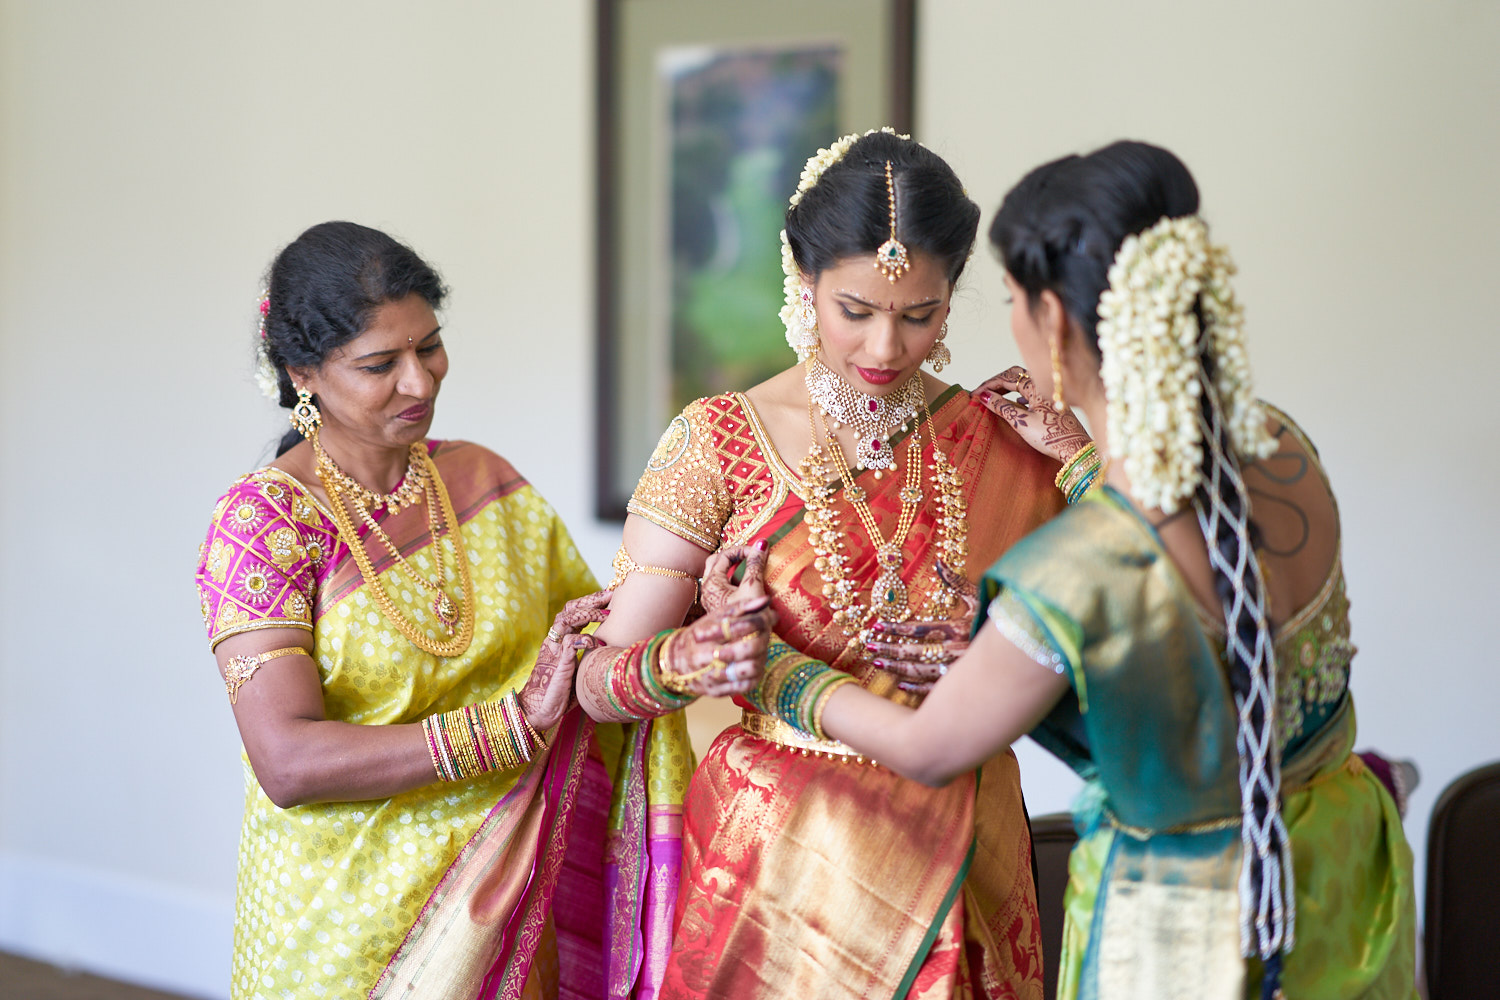 south-indian-wedding-ceremony-photography-by-afewgoodclicks-net-in-saratoga 54.jpg